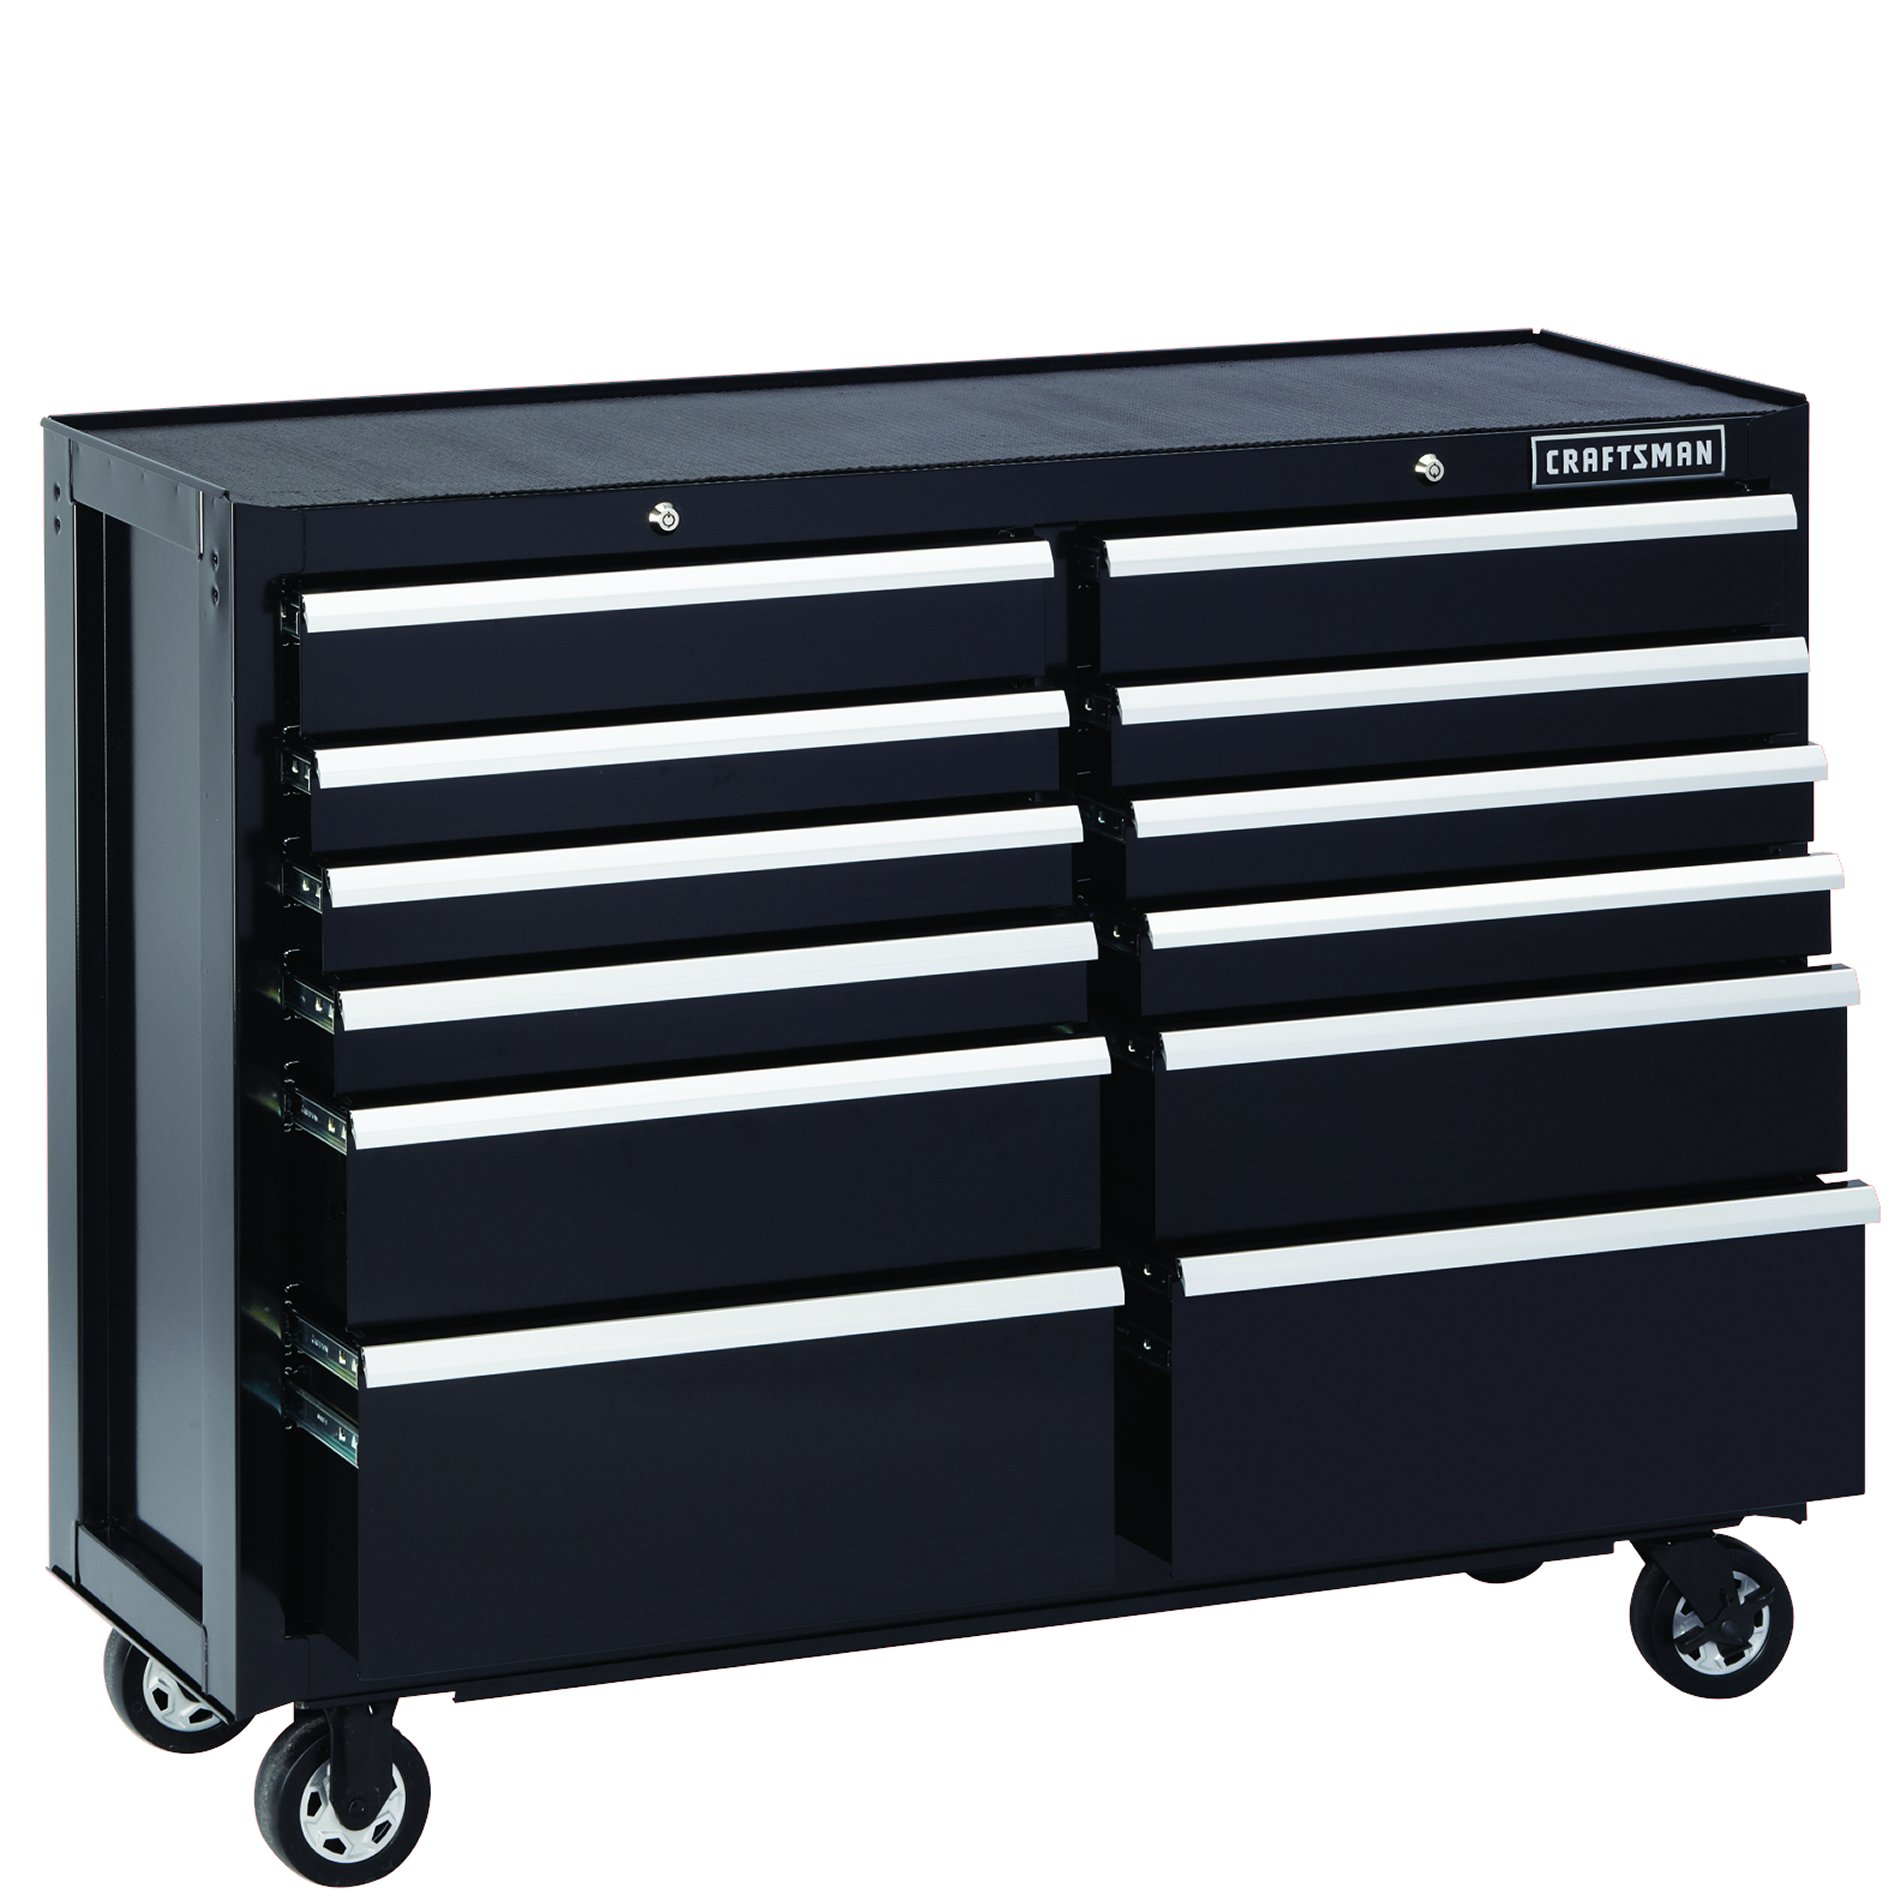 Craftsman 52-Inch 12-Drawer Premium Heavy-Duty Rolling Cabinet- Black